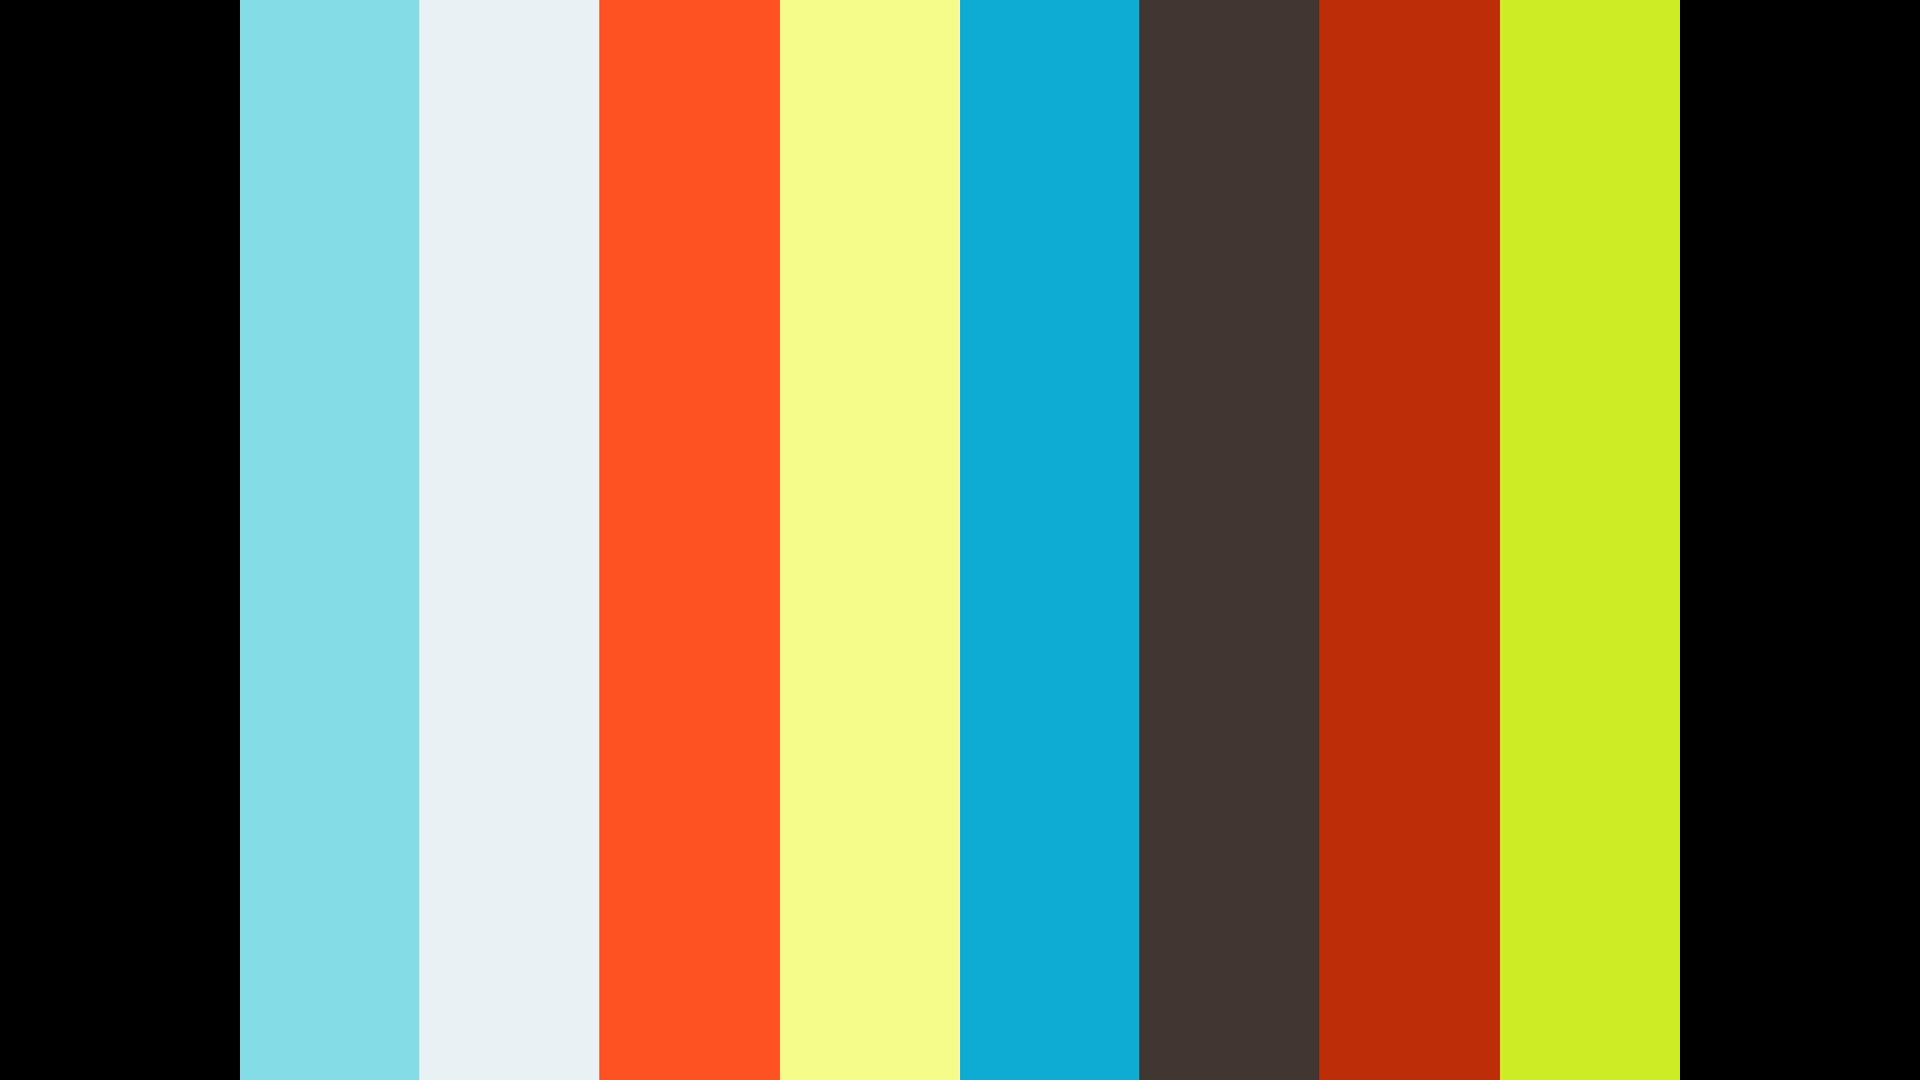 Why did Derek Johnstone enter National  Chef of the Year?